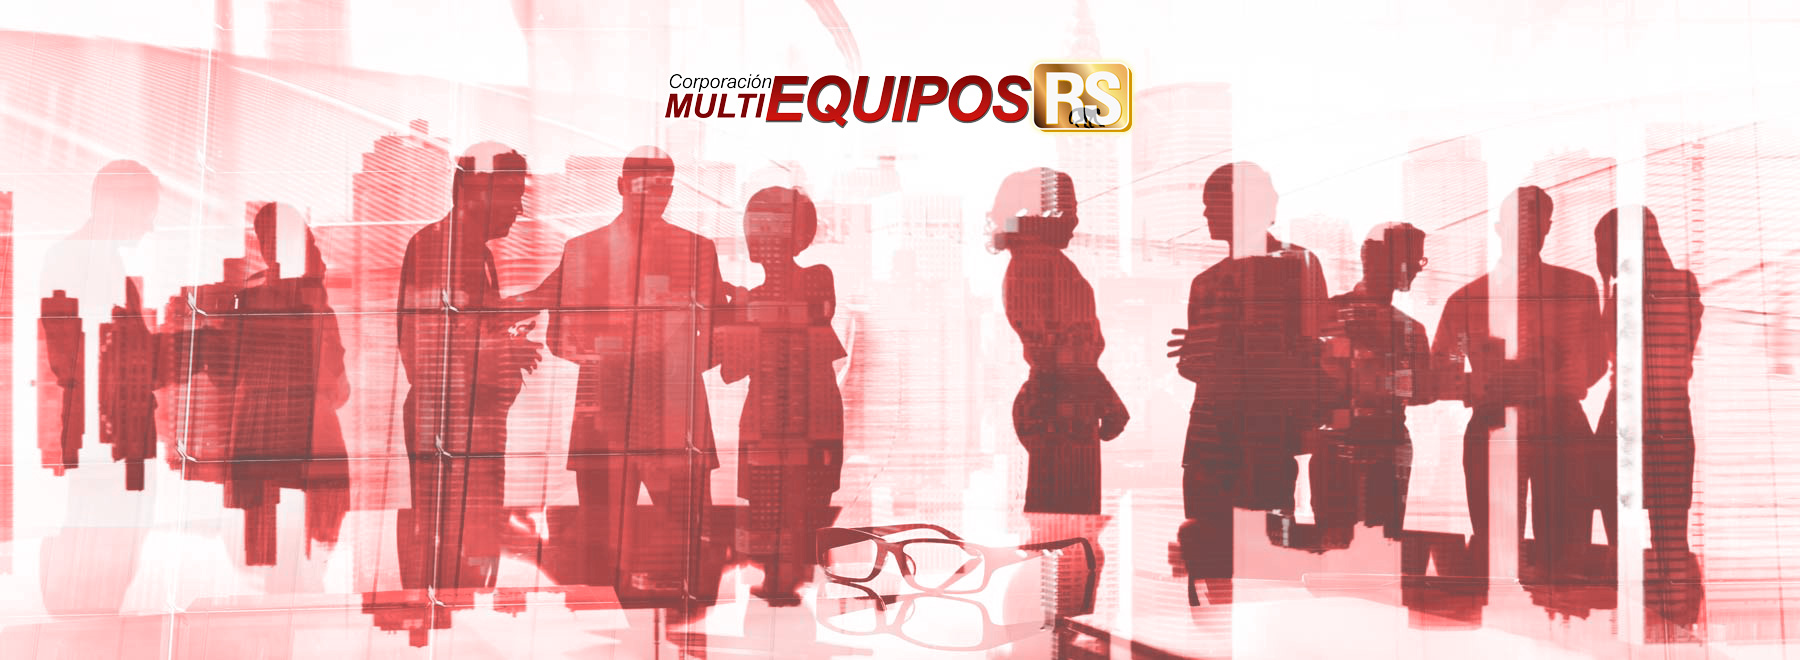 Corp. Multiequipos RS